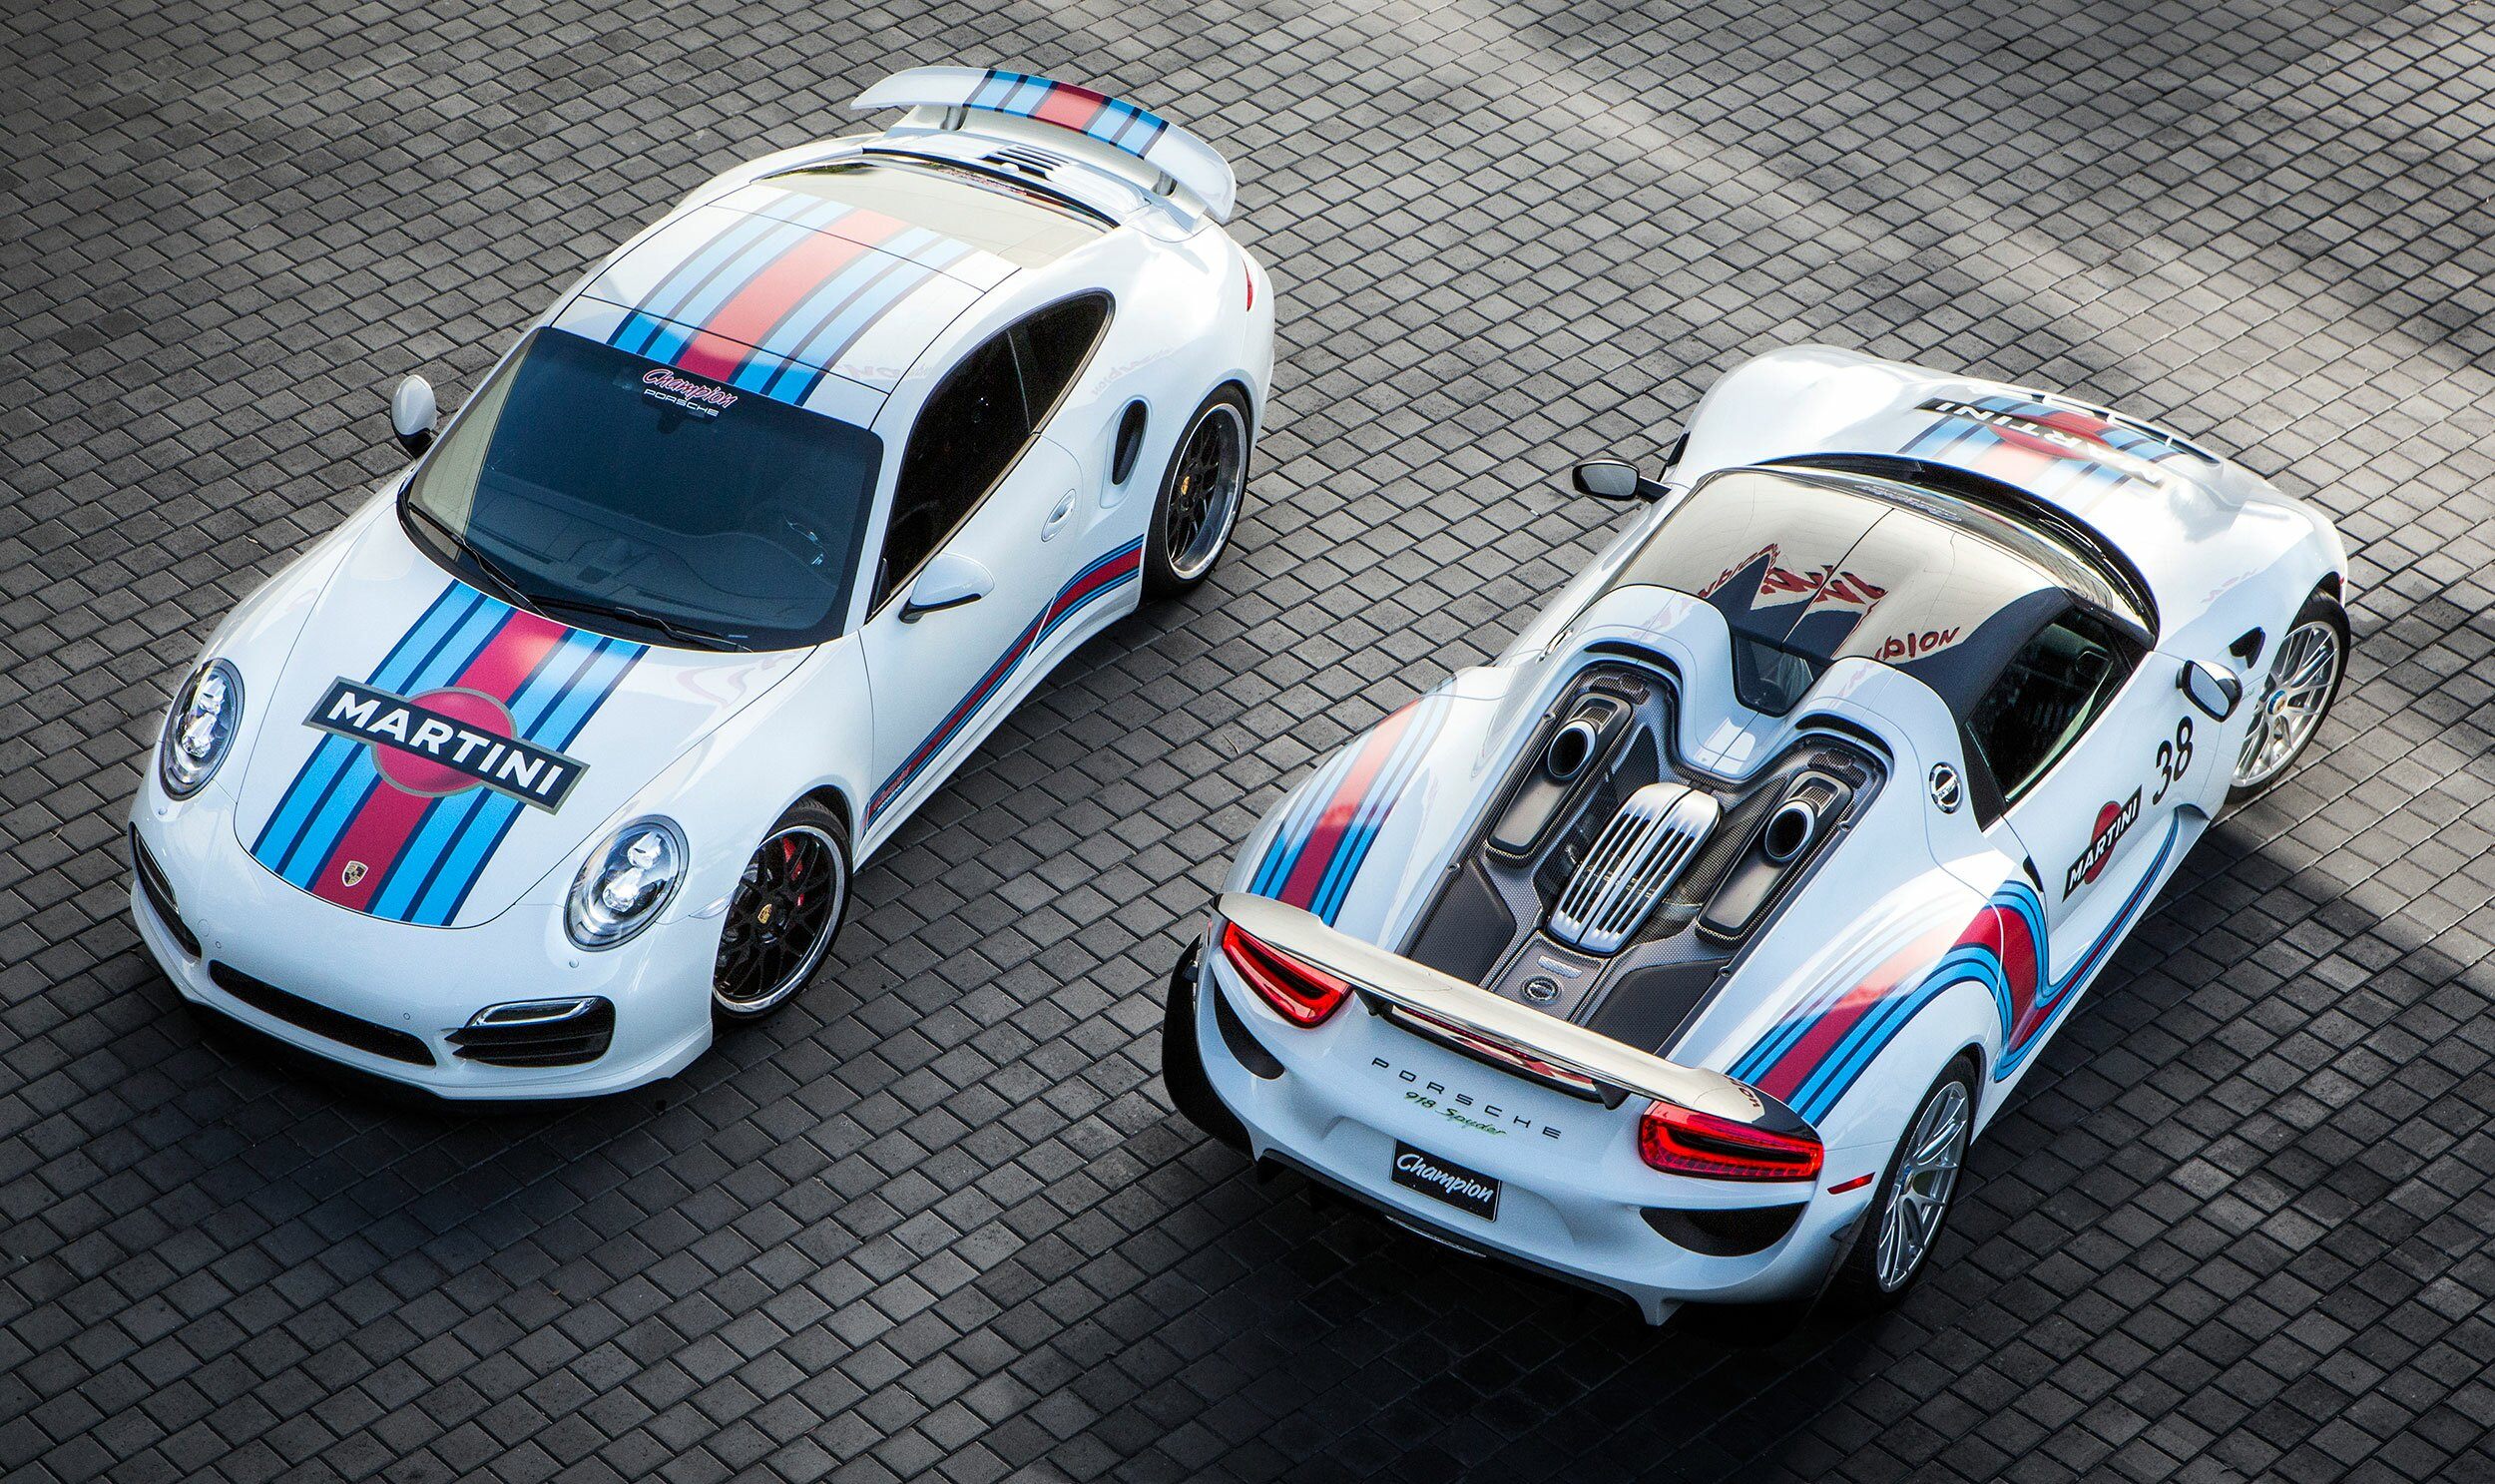 Martini Racing 918 Spyder Champion Porsche The Werkshop The Place For Automotive